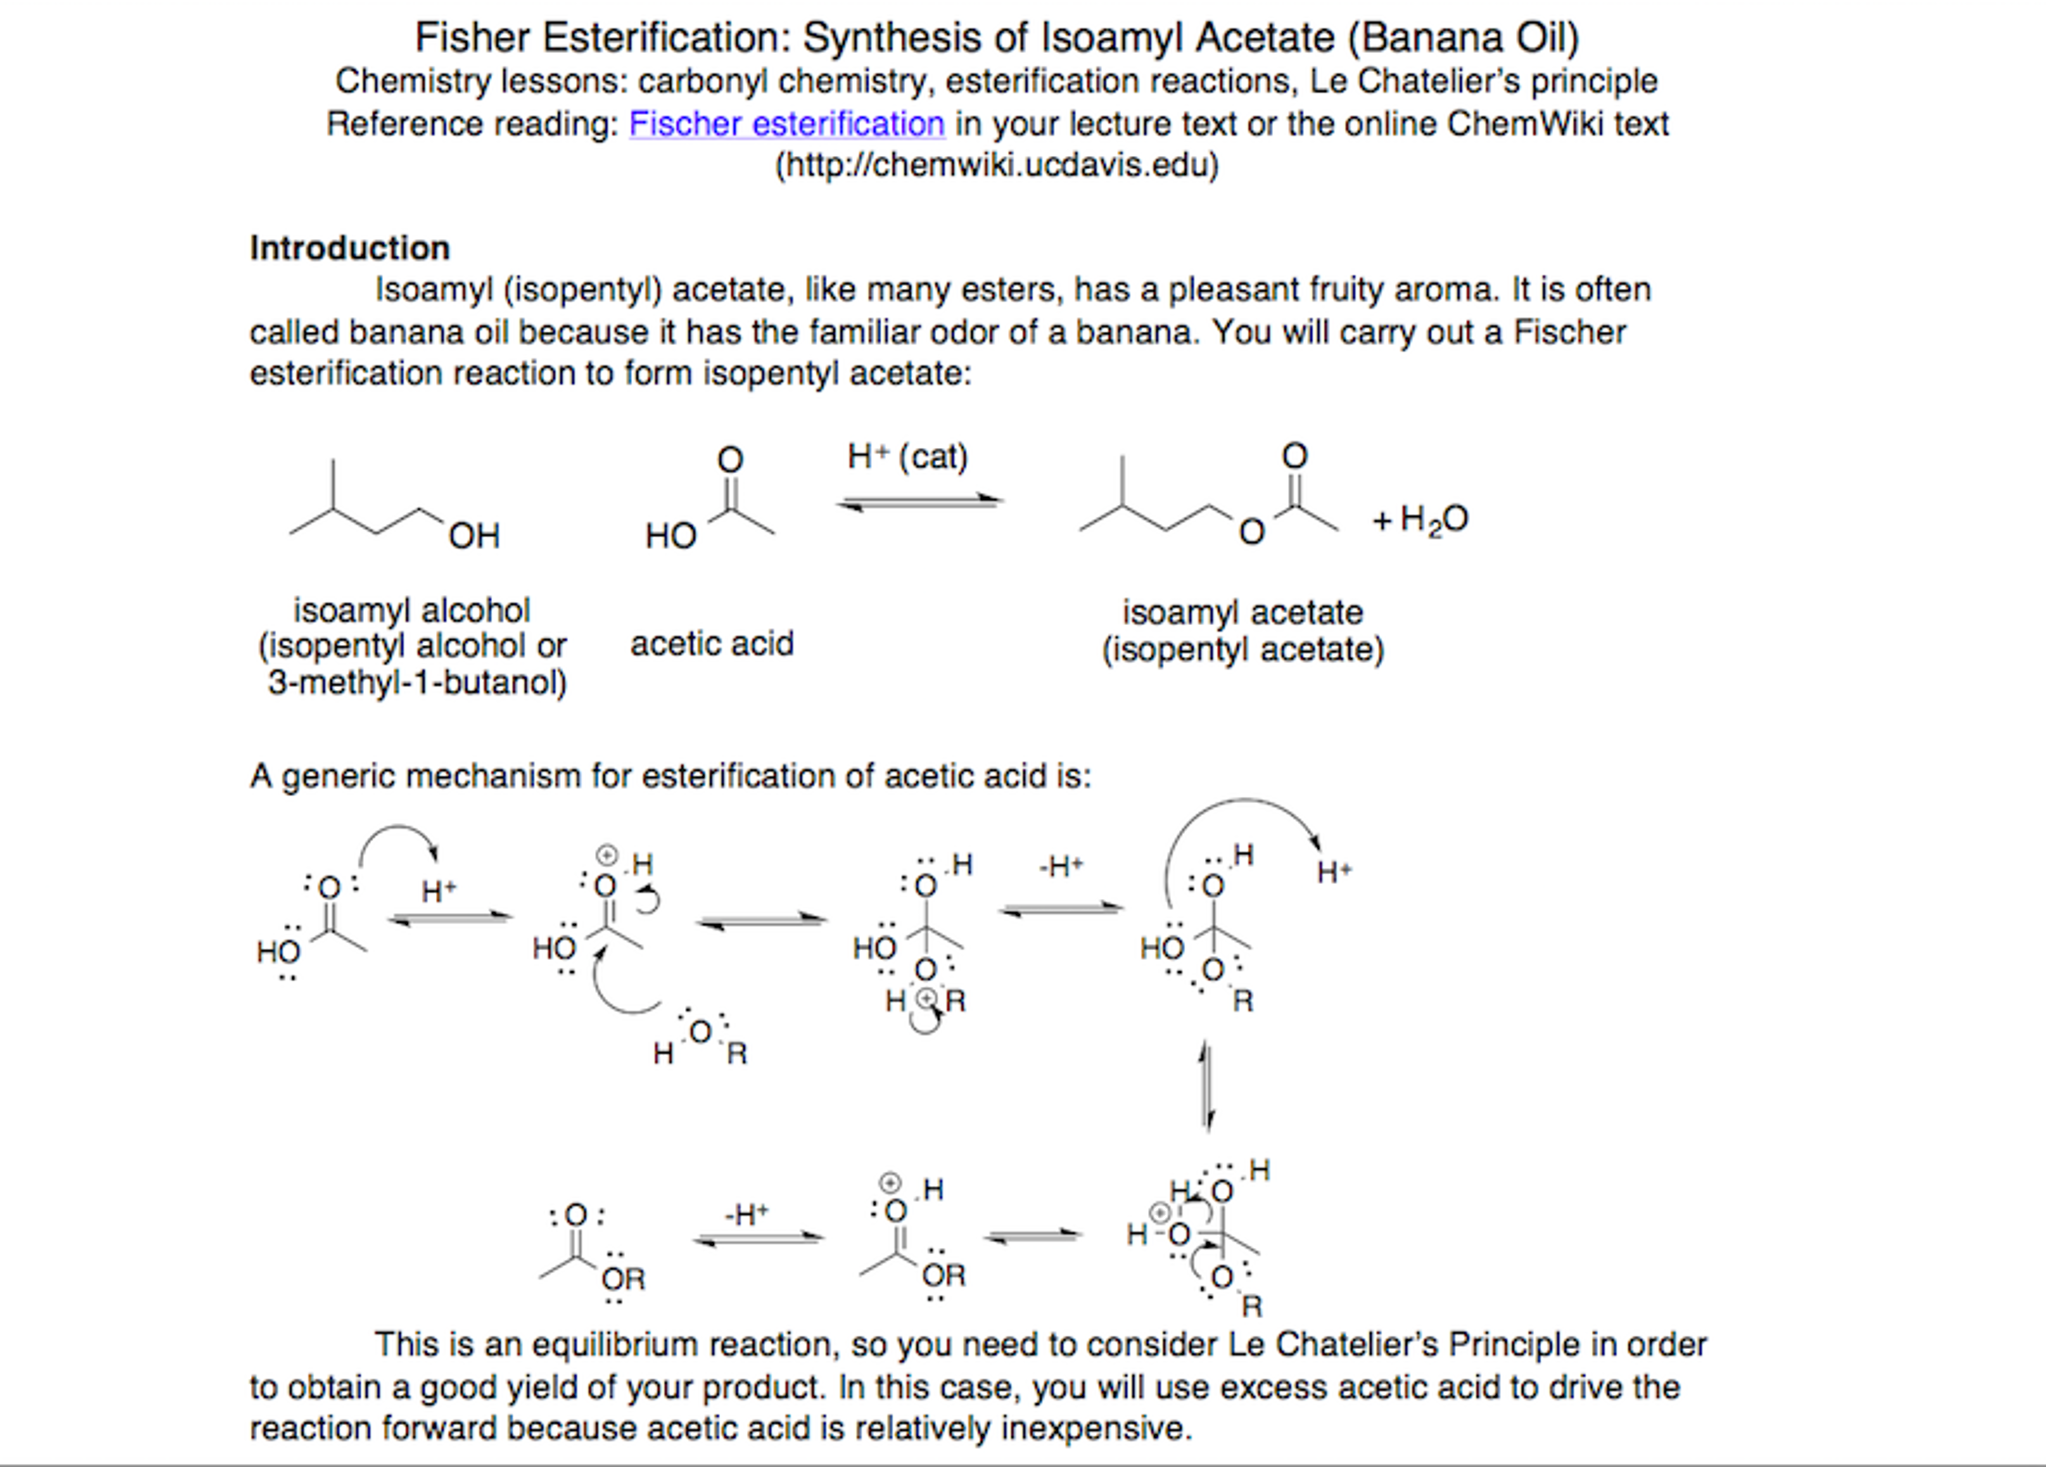 isoamyl acetate synthesis from fischer reaction Ch243 synthesis of esters (3/11) 1 ch243: lab 4 synthesis of artificial flavorings by fischer esterification isoamyl acetate 3 oil of spruce 2.